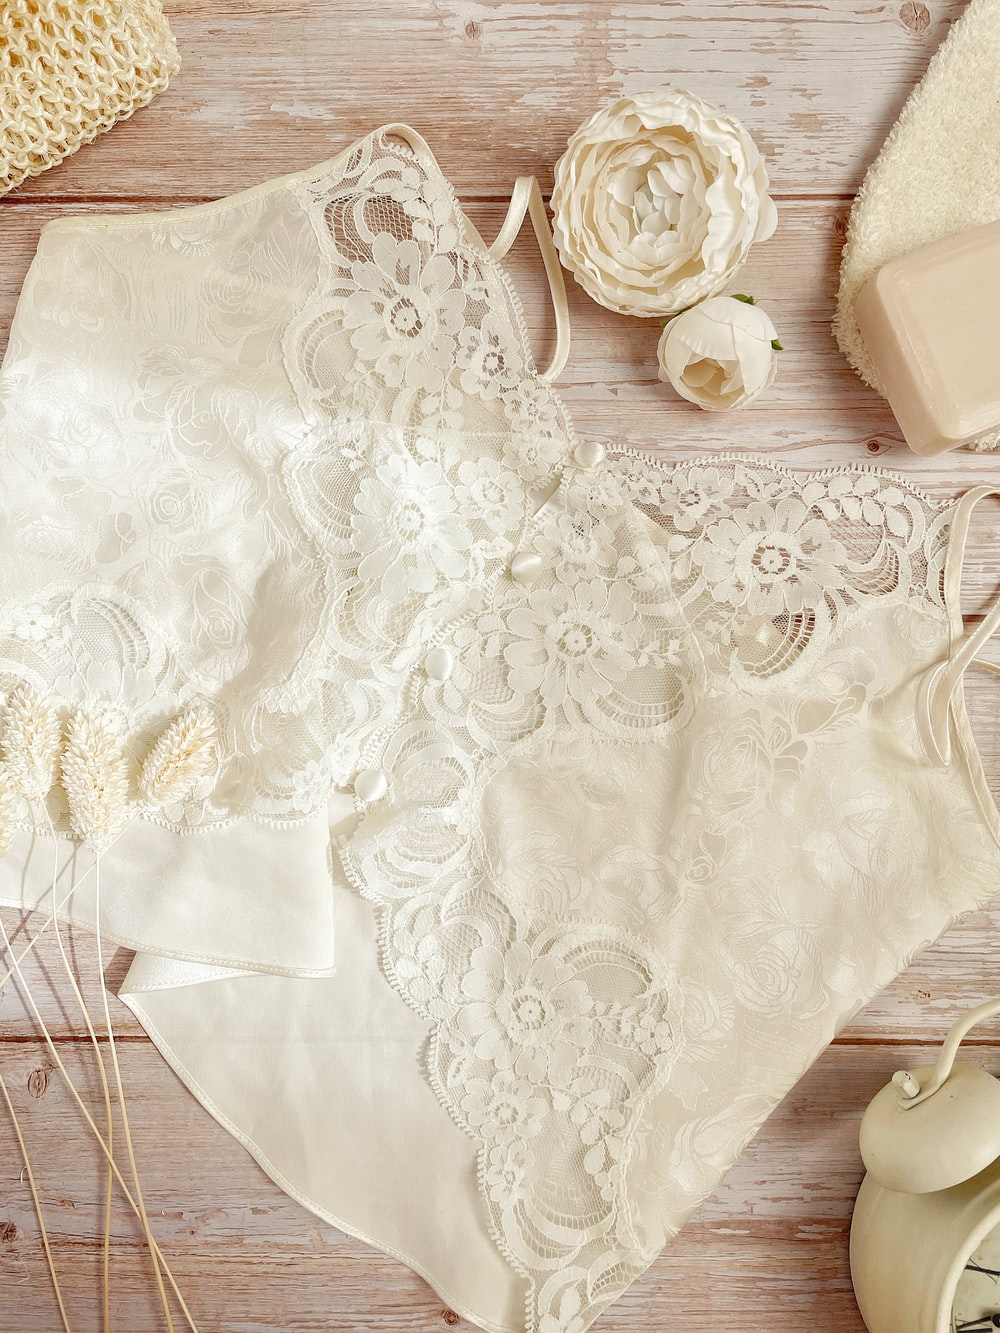 white floral table cloth on table